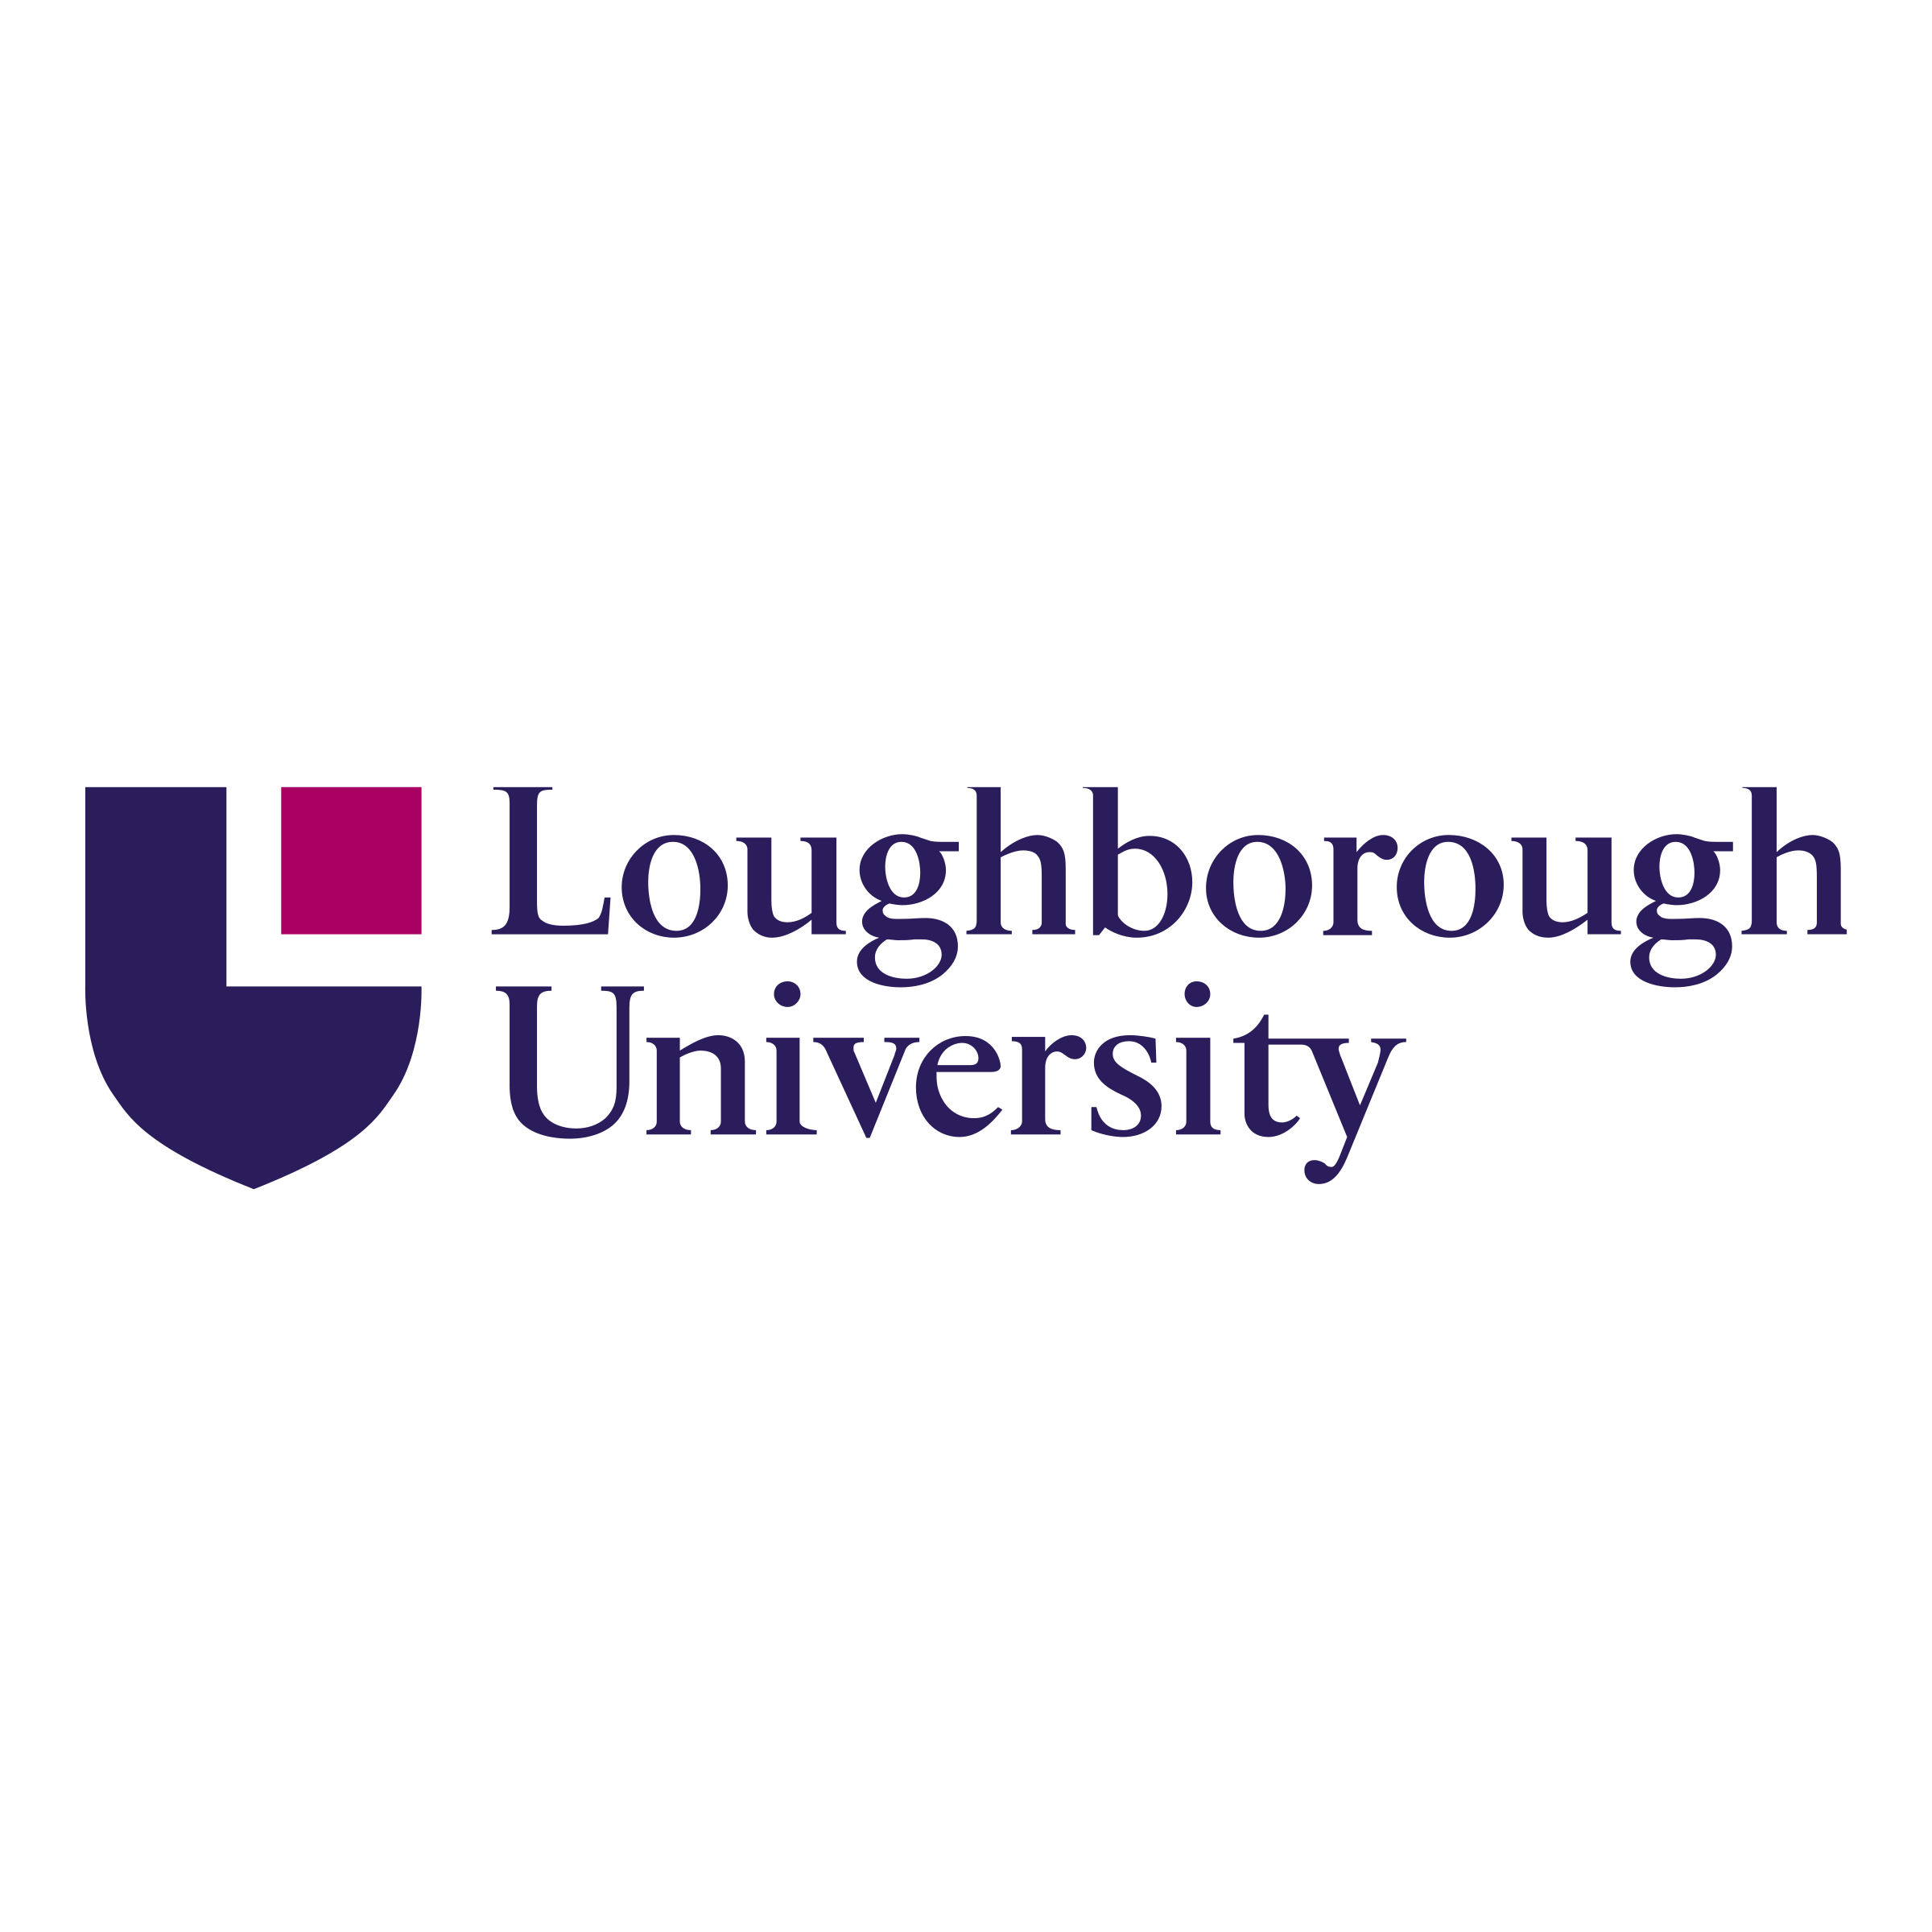 Full Fee Scholarship for African Students At Loughborough University